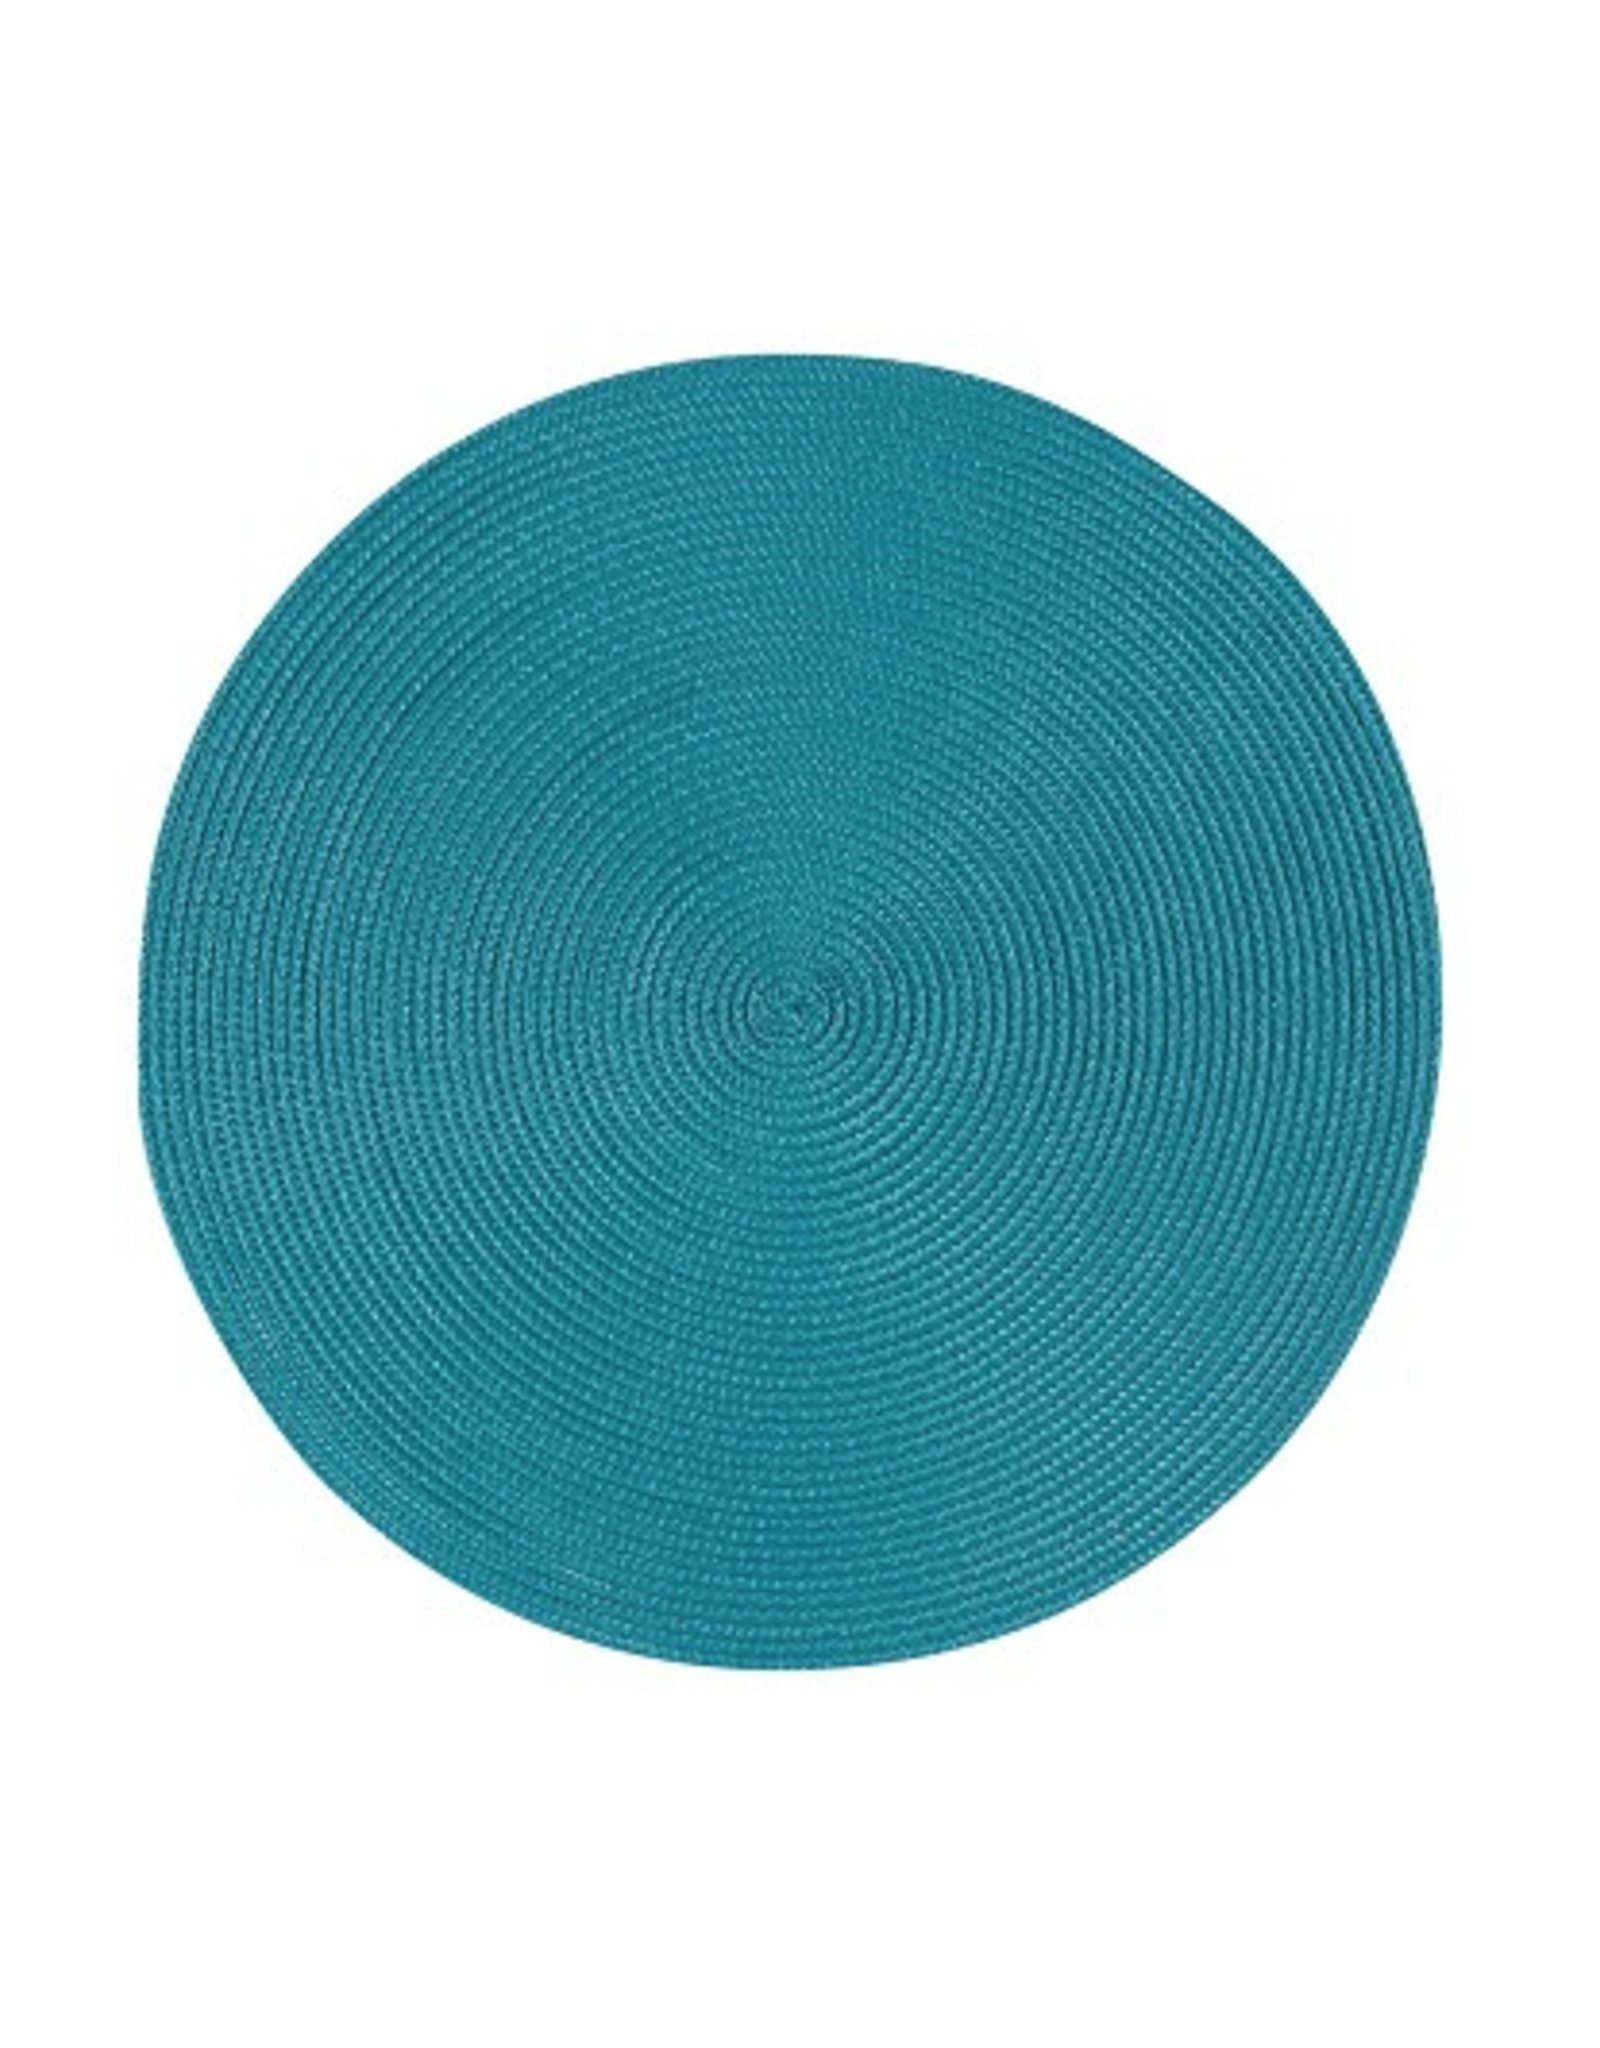 DCA - Placemat/Spiral, Bright Teal, 15""